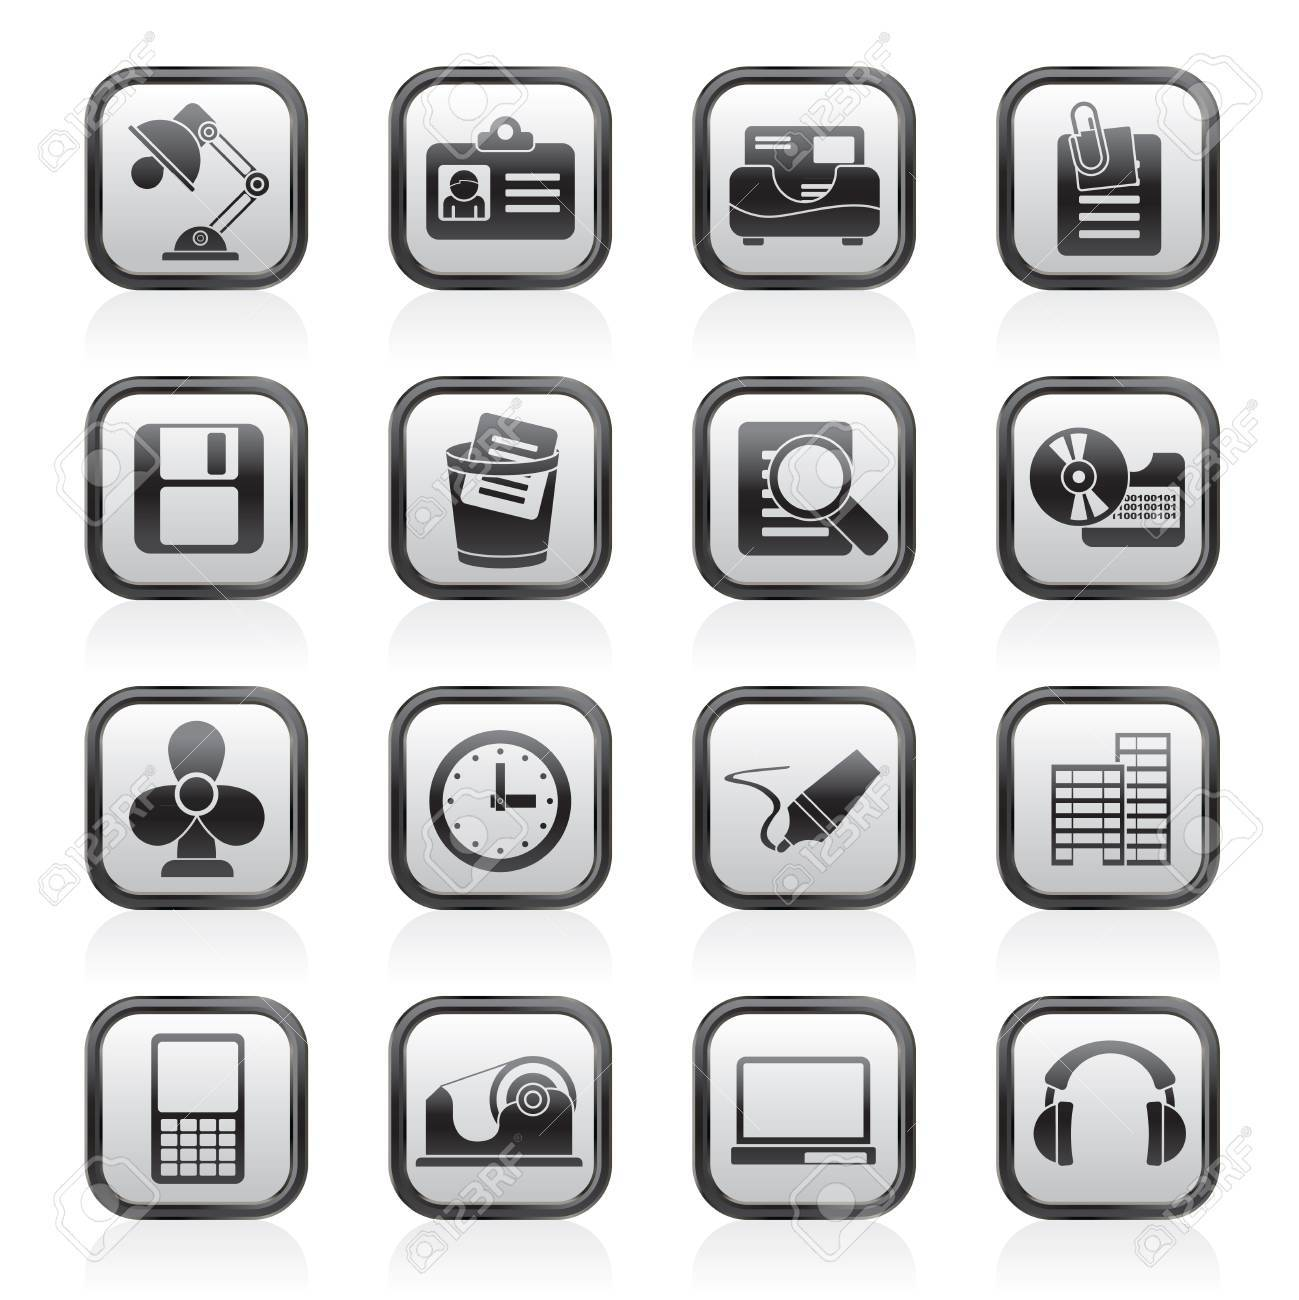 Office and business icons - vector icon set Stock Vector - 13910989